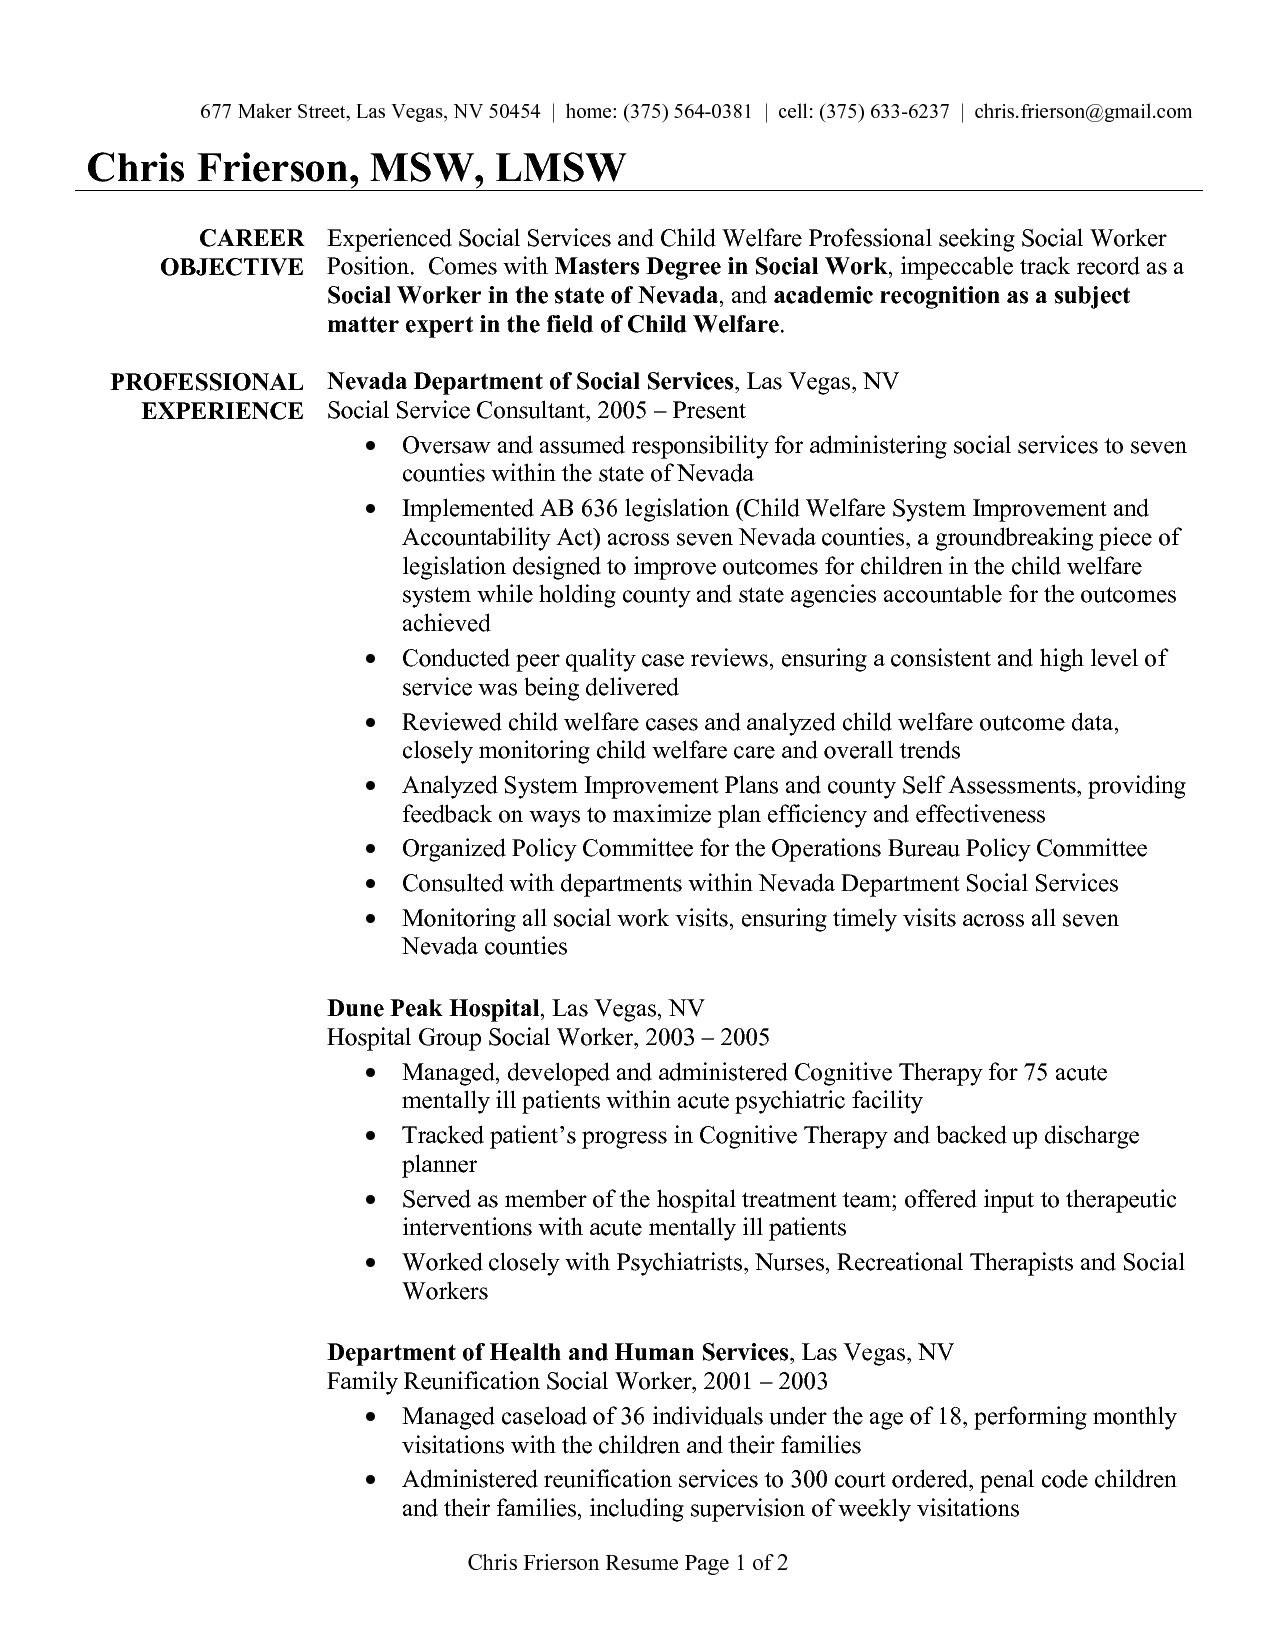 job skills resume resume template resume social work resume examples social worker resume sample